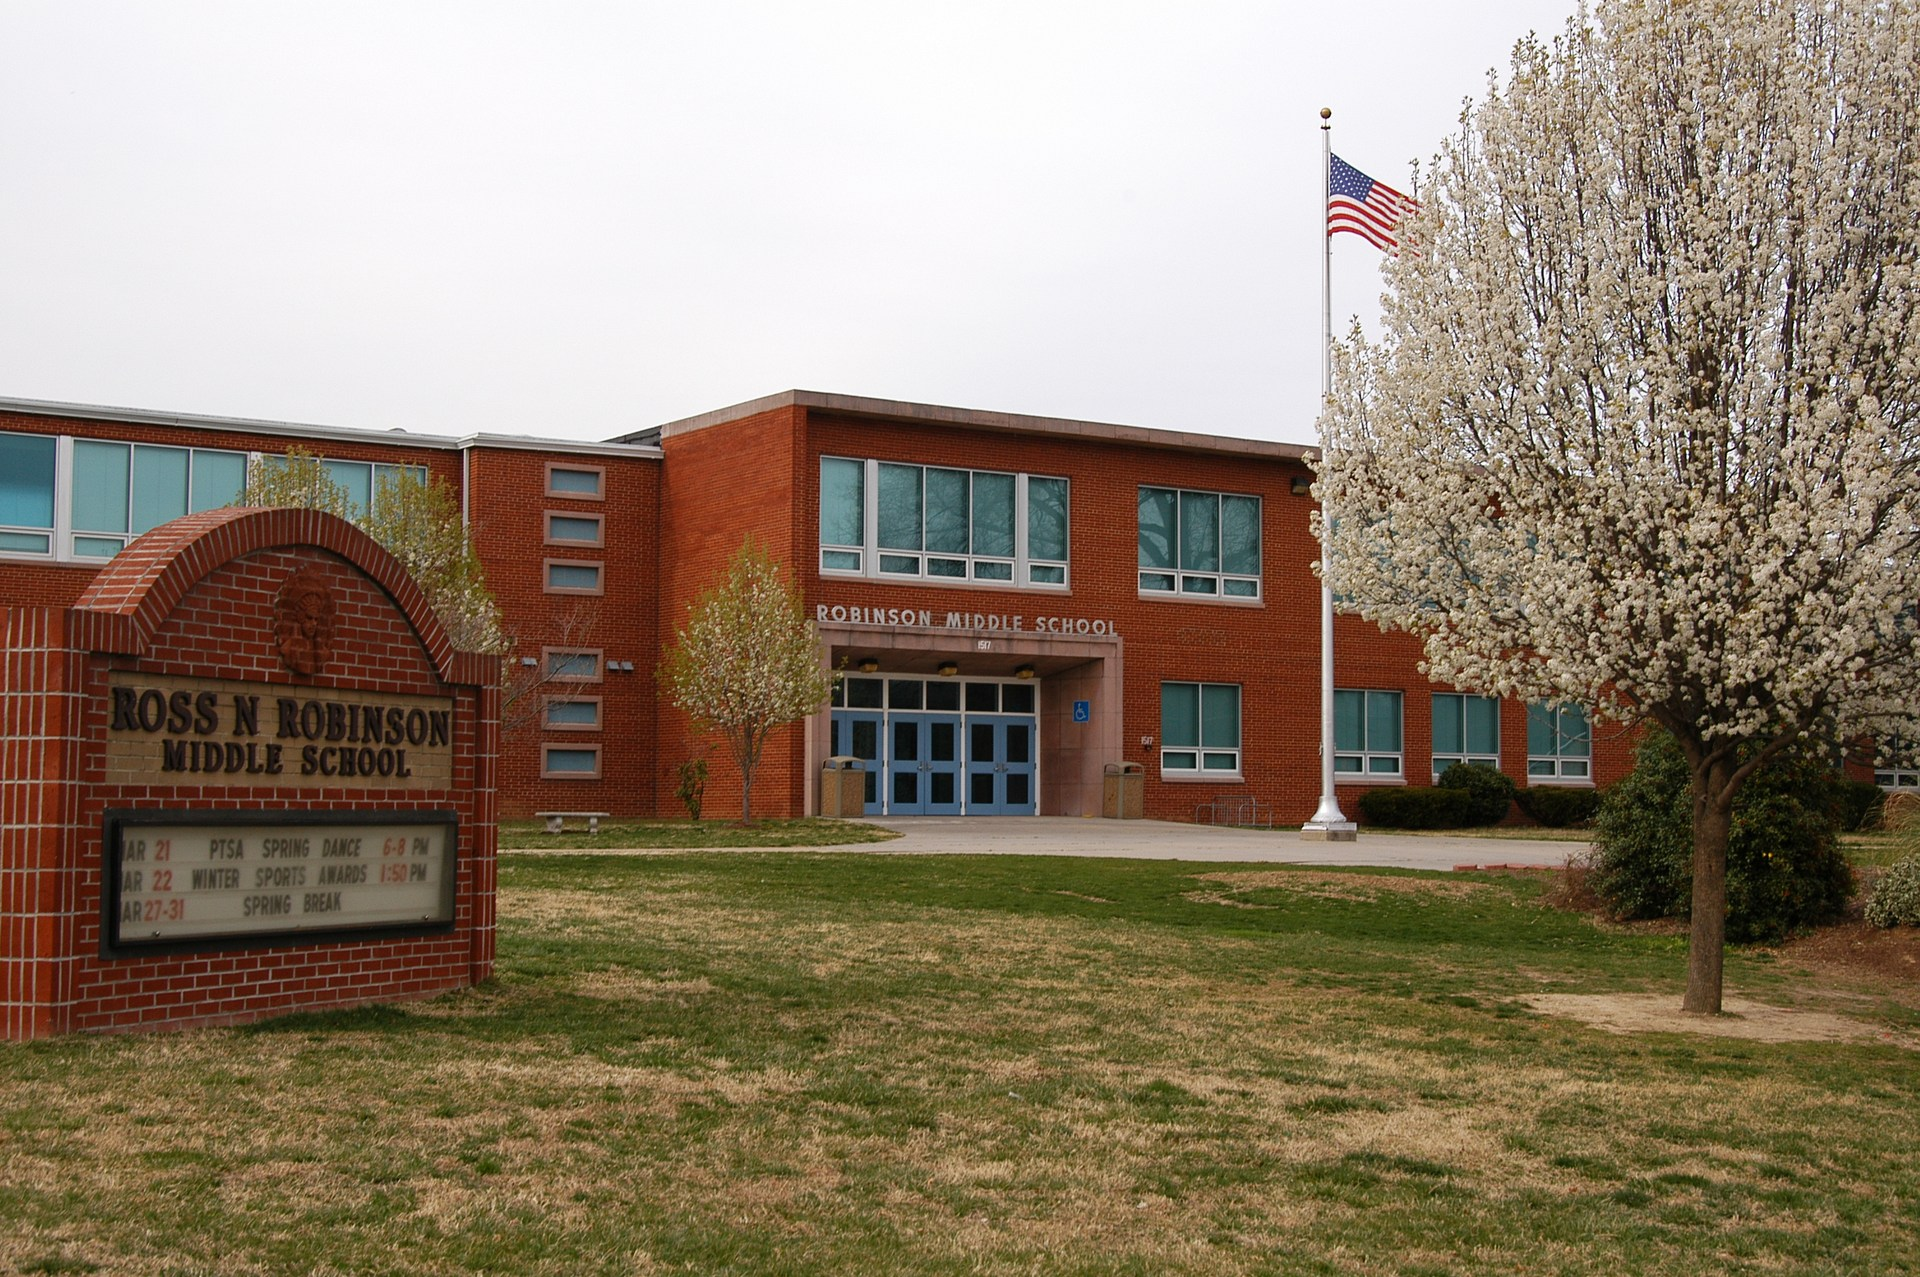 Robinson Middle School